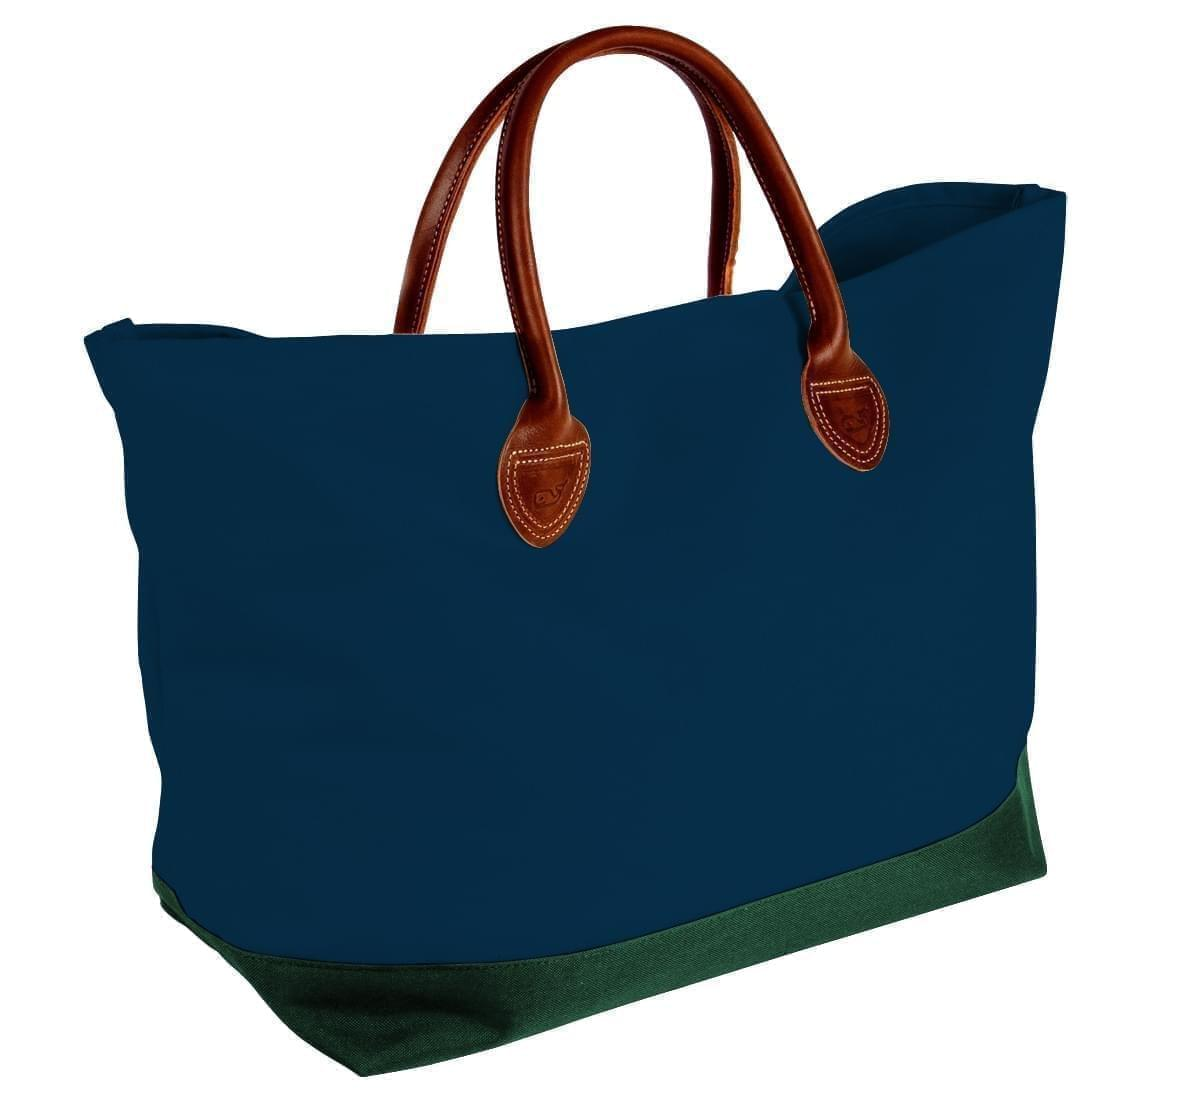 USA Made Canvas Leather Handle Totes, Navy-Hunter Green, 10899-VC9